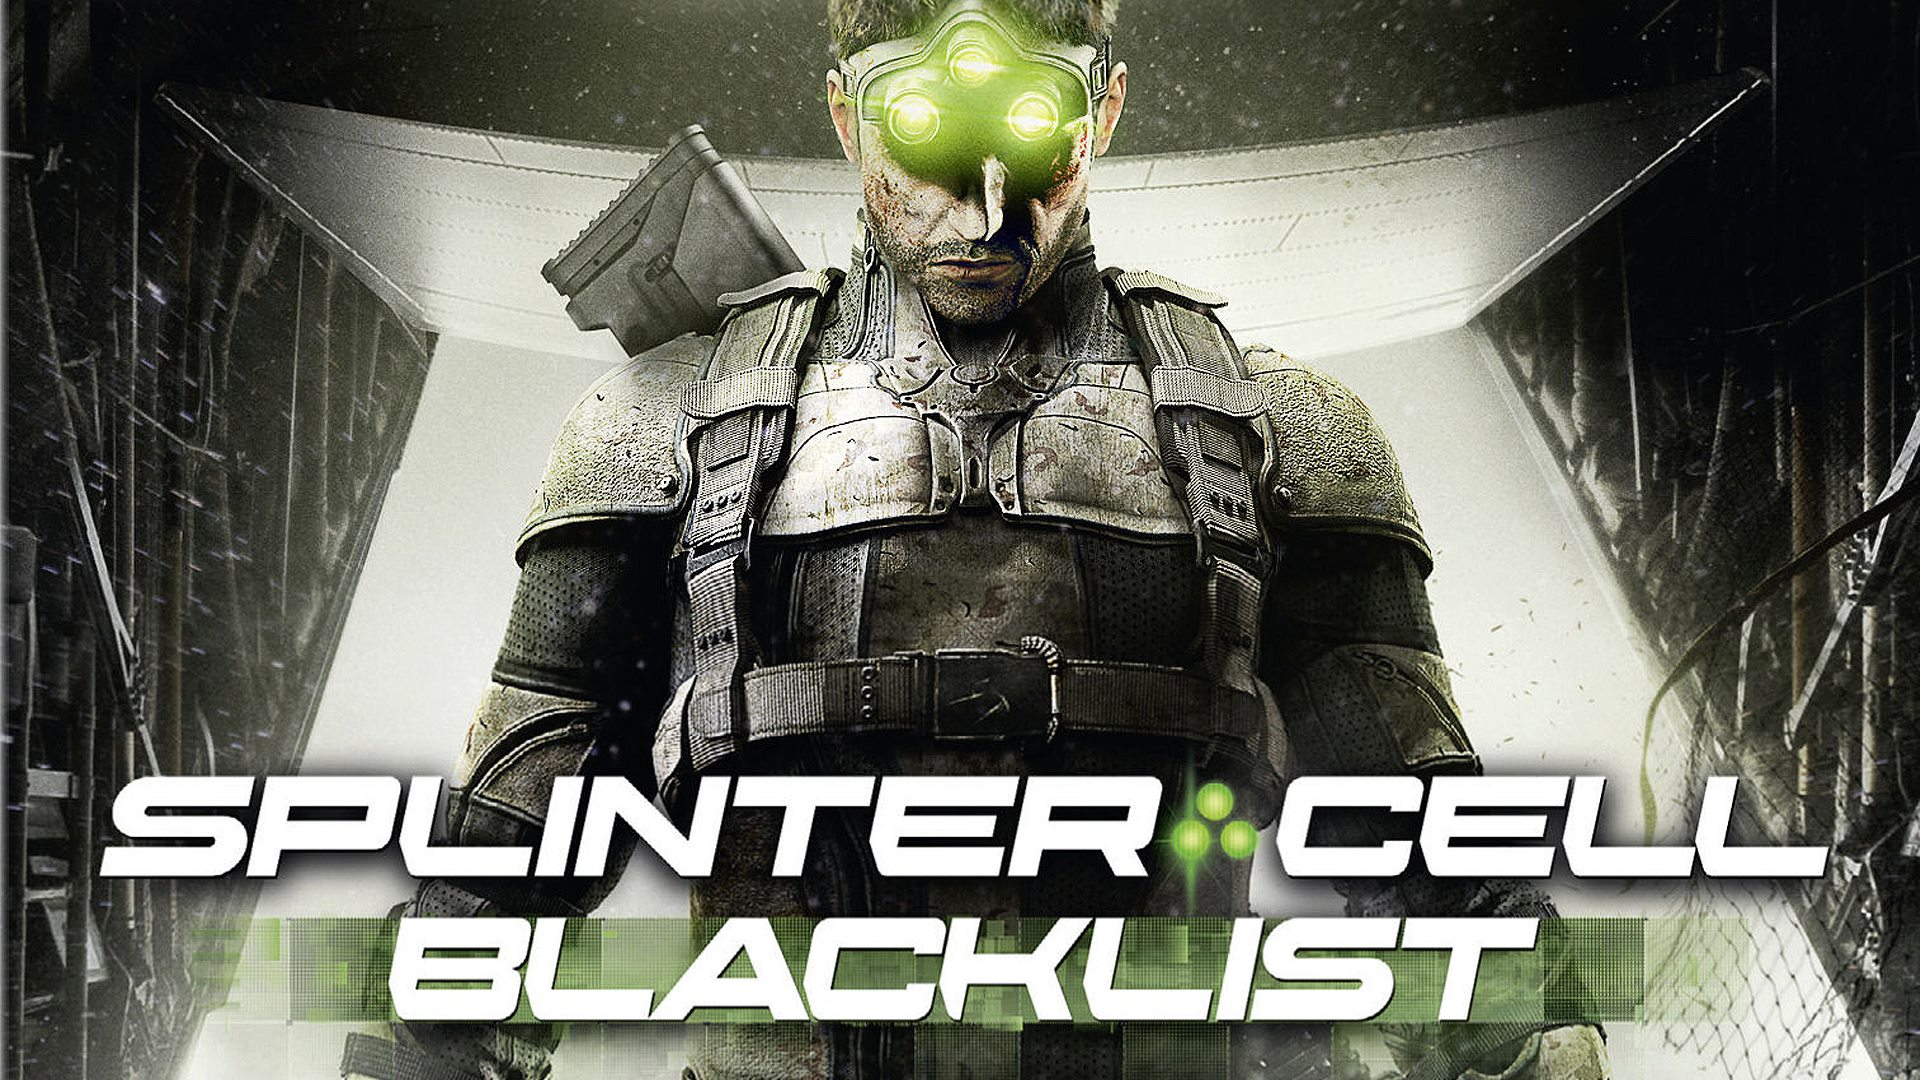 Tom Clancy's Splinter Cell Blacklist(RU/CIS Steam Gift)